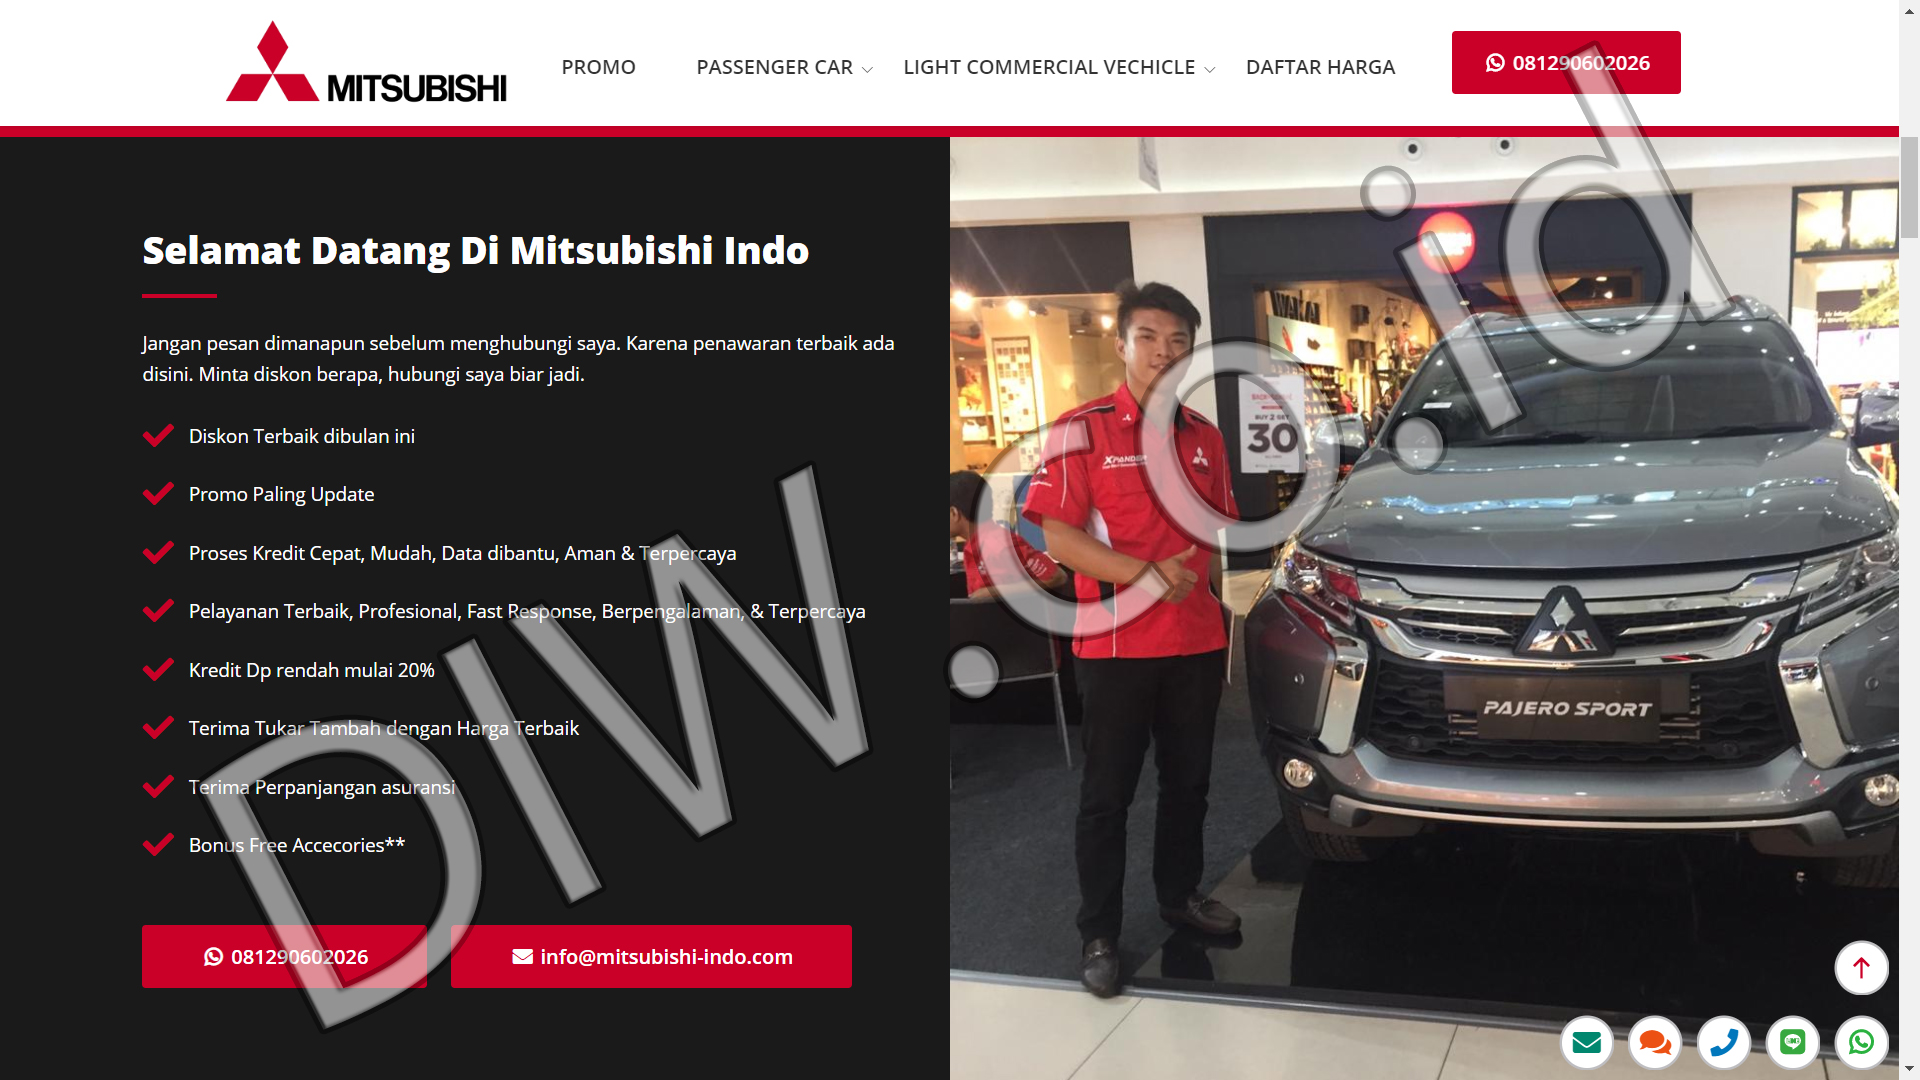 Portfolio 2 - Mitsubishi Indo - Andri Sunardi - Freelancer - Web Developer - CEO DIW.co.id